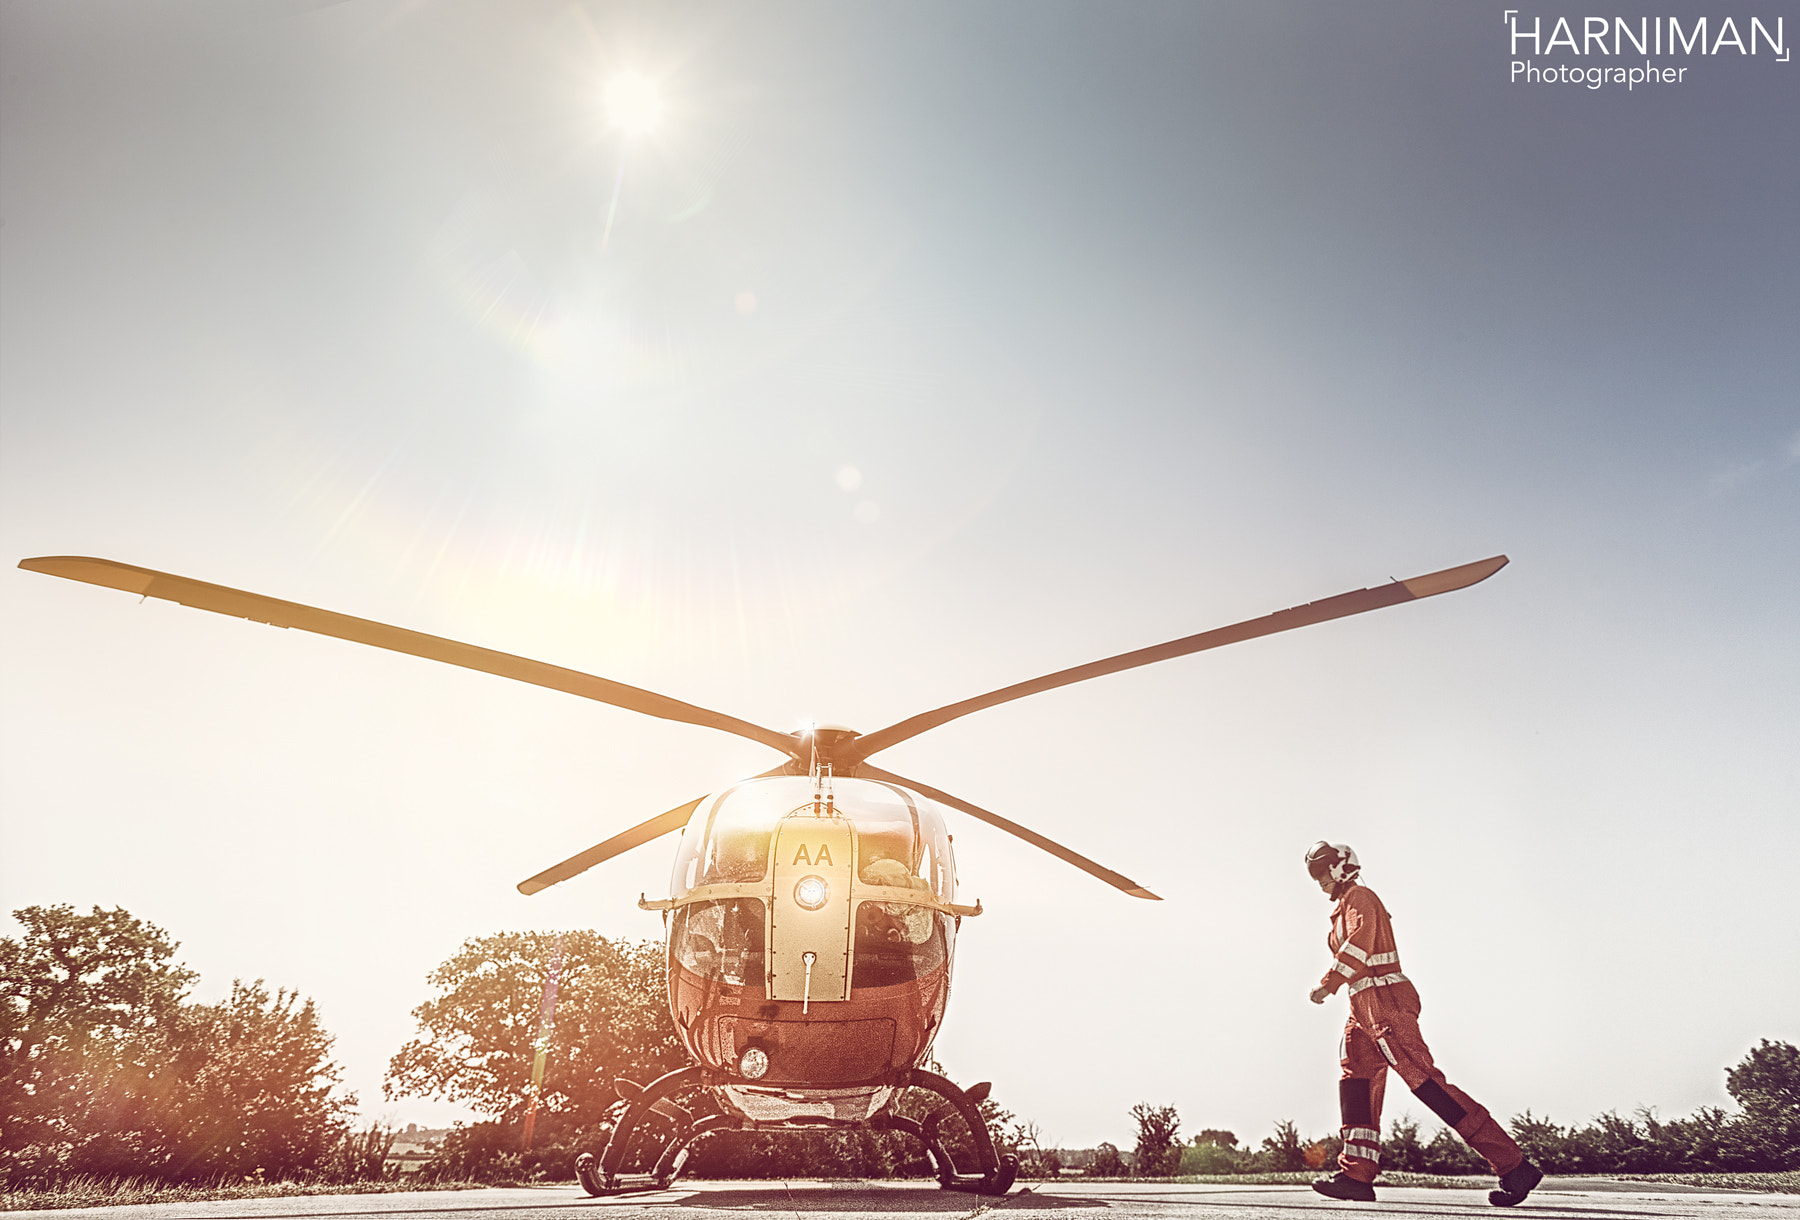 Photograph Air Ambulance by Nigel Harniman on 500px